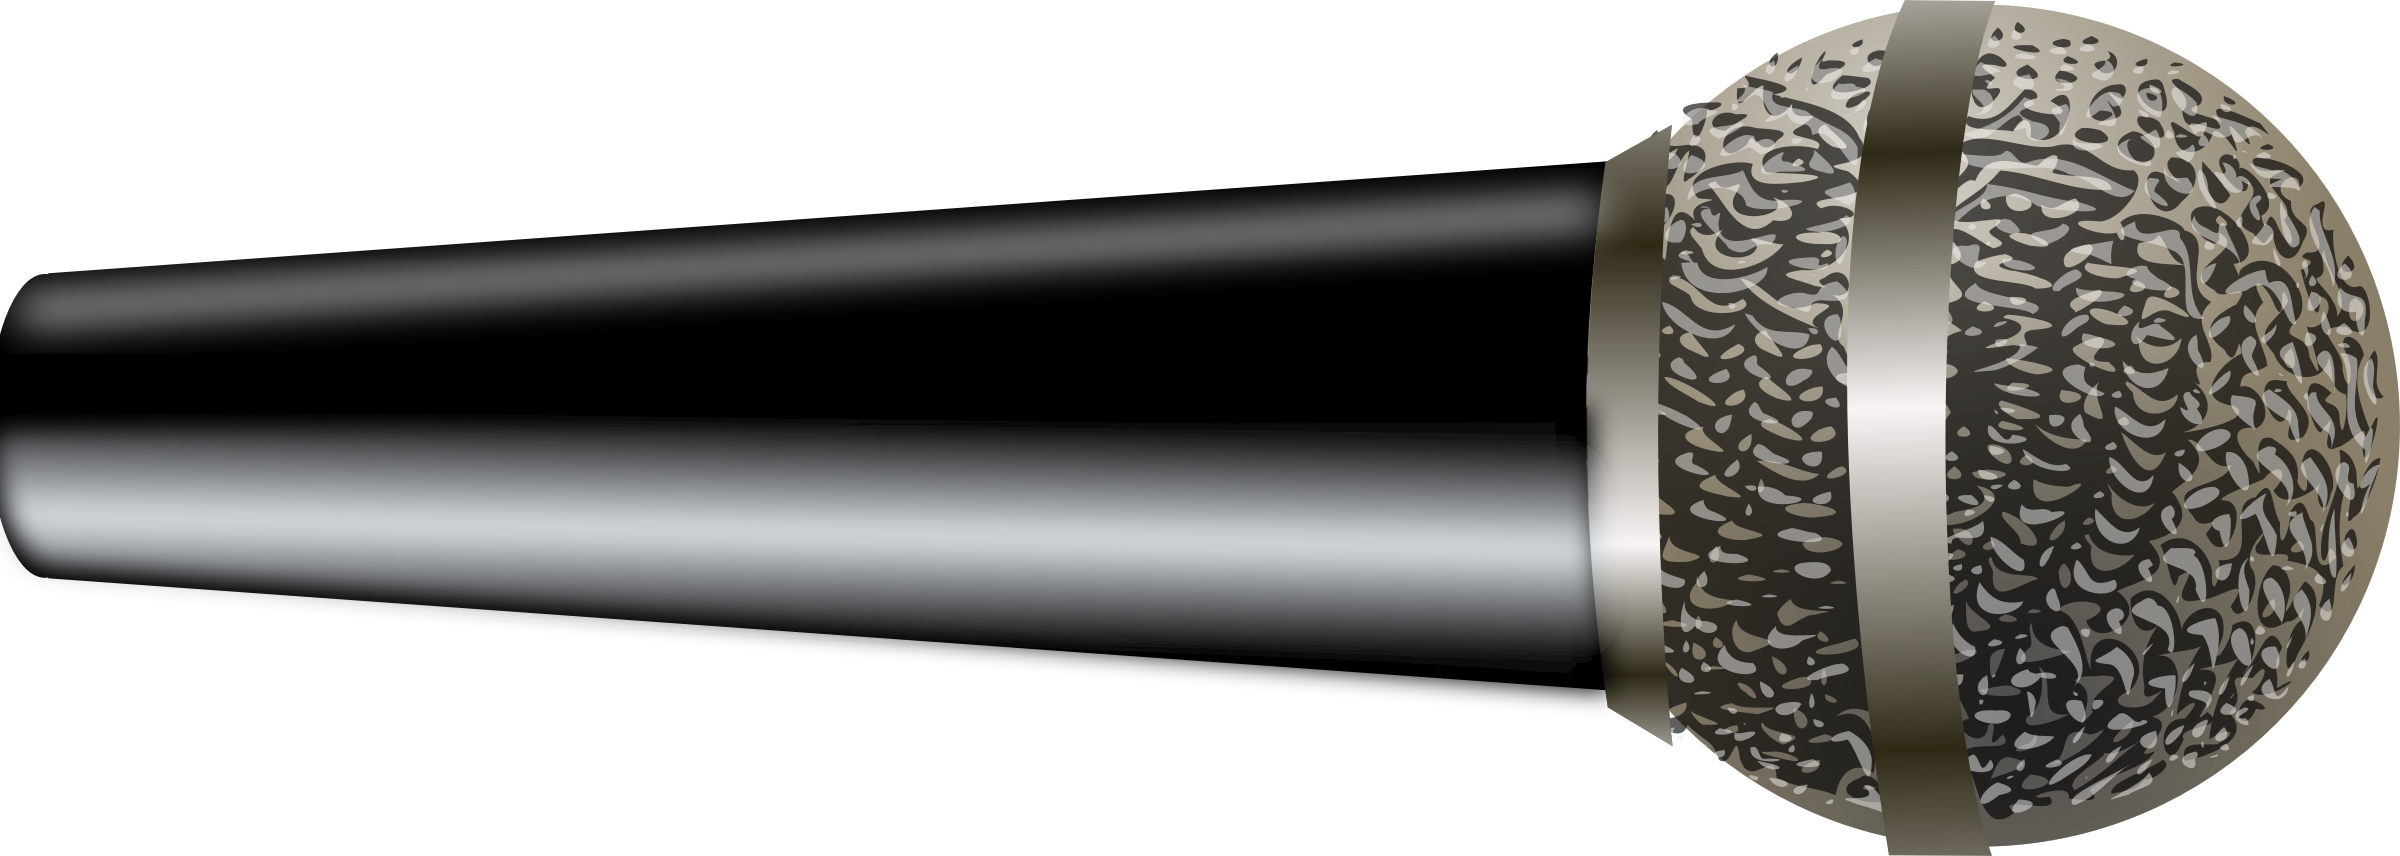 Background Transparent Microphone image #20000